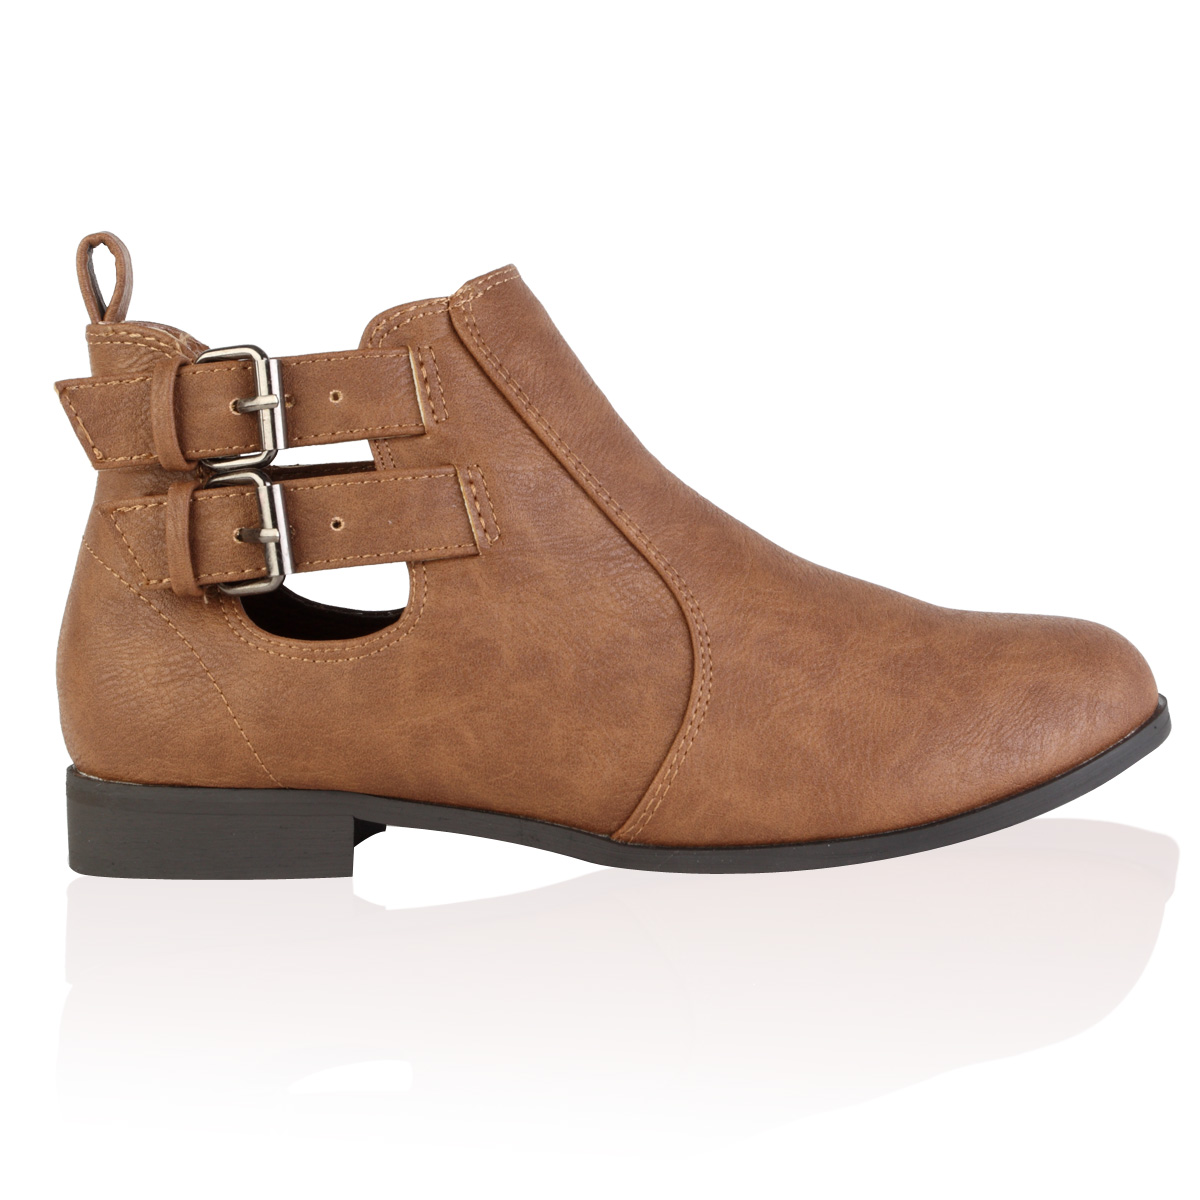 Light Brown Flat Ankle Boots Tan ankle boots new womensBrown Flat Ankle Boots